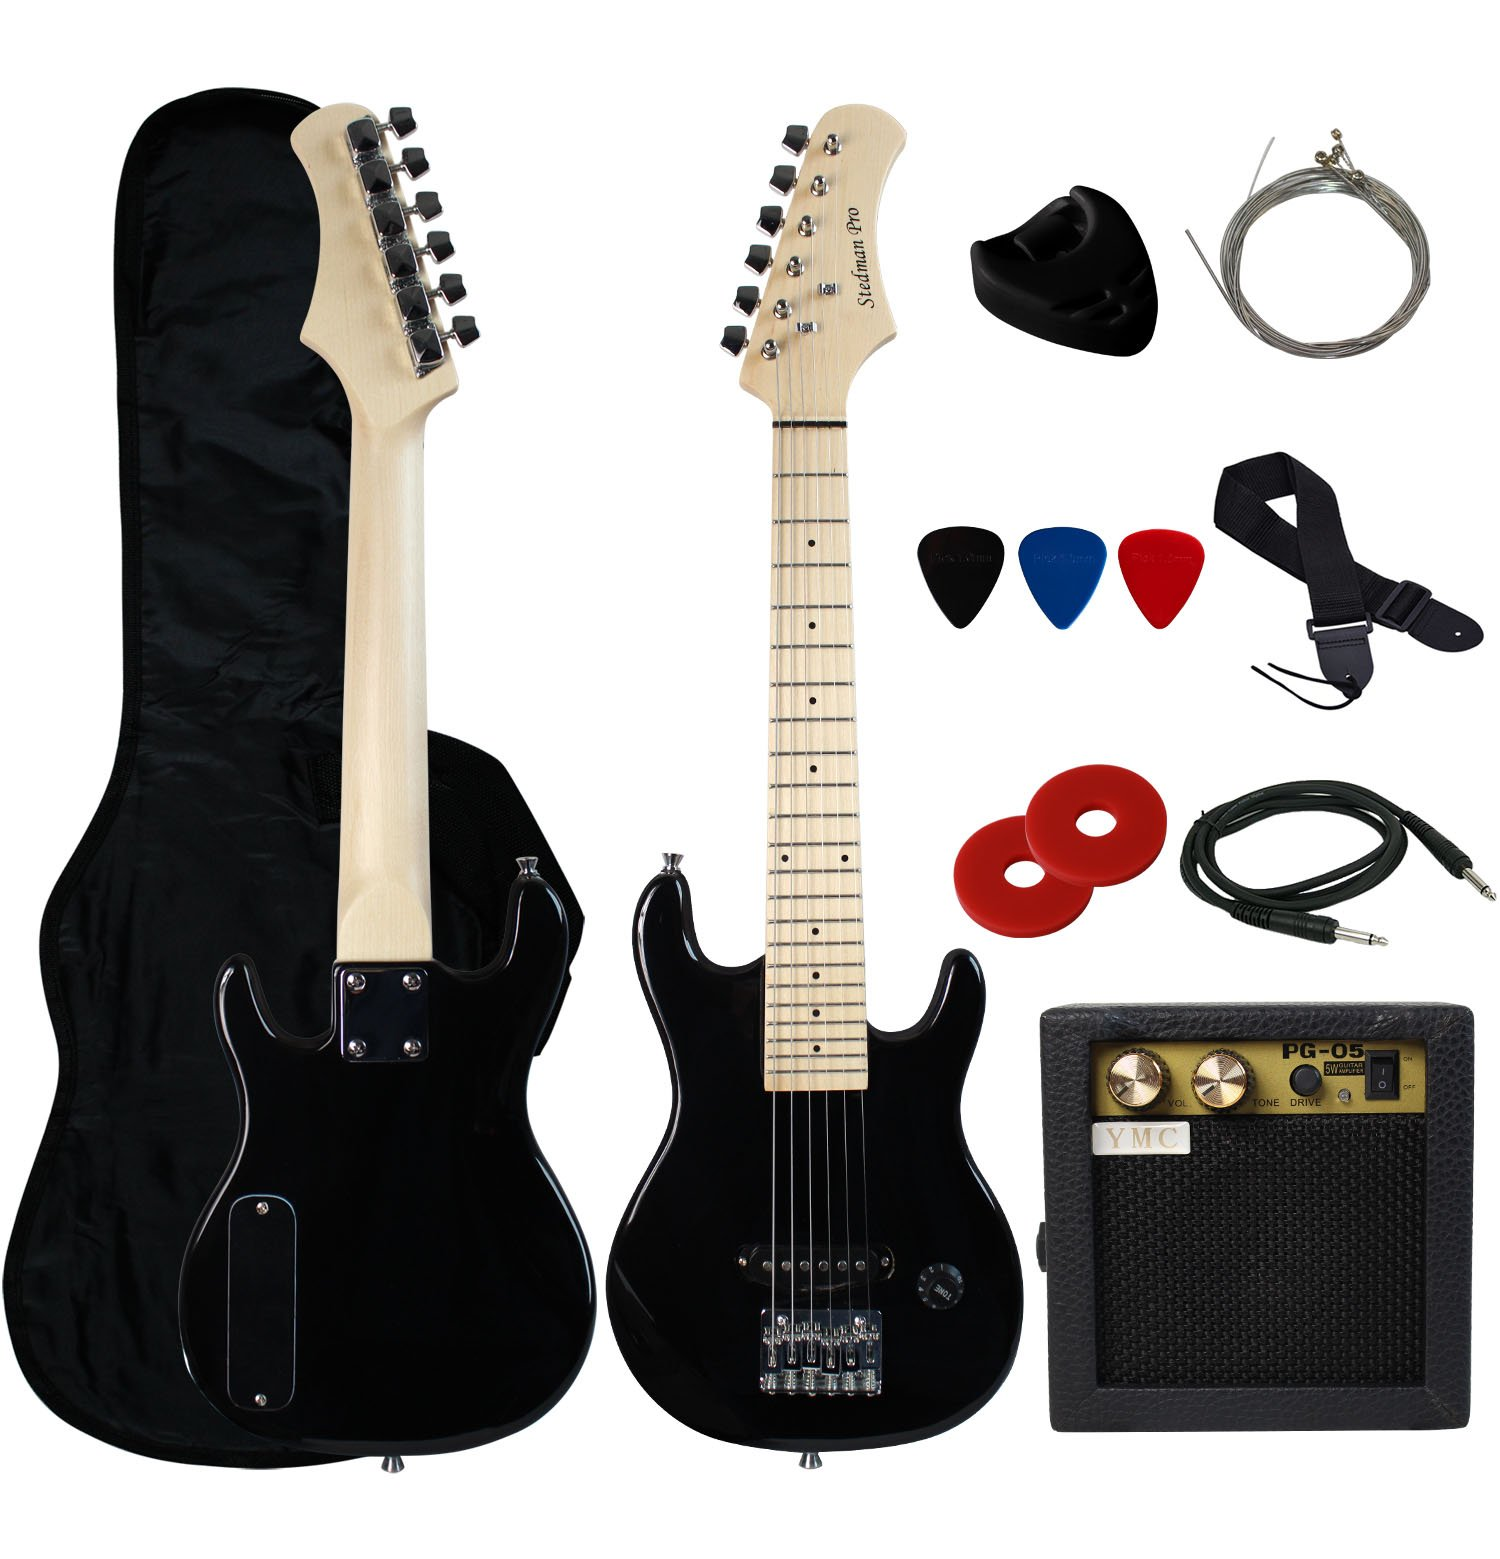 Stedman Pro 30'' Kids Electric Guitar Pack With 5-Watt Amp, Gig Bag,Strap,Cable,Strings,Picks,and Wrench,Guitar Combo Accessory Kit--Black